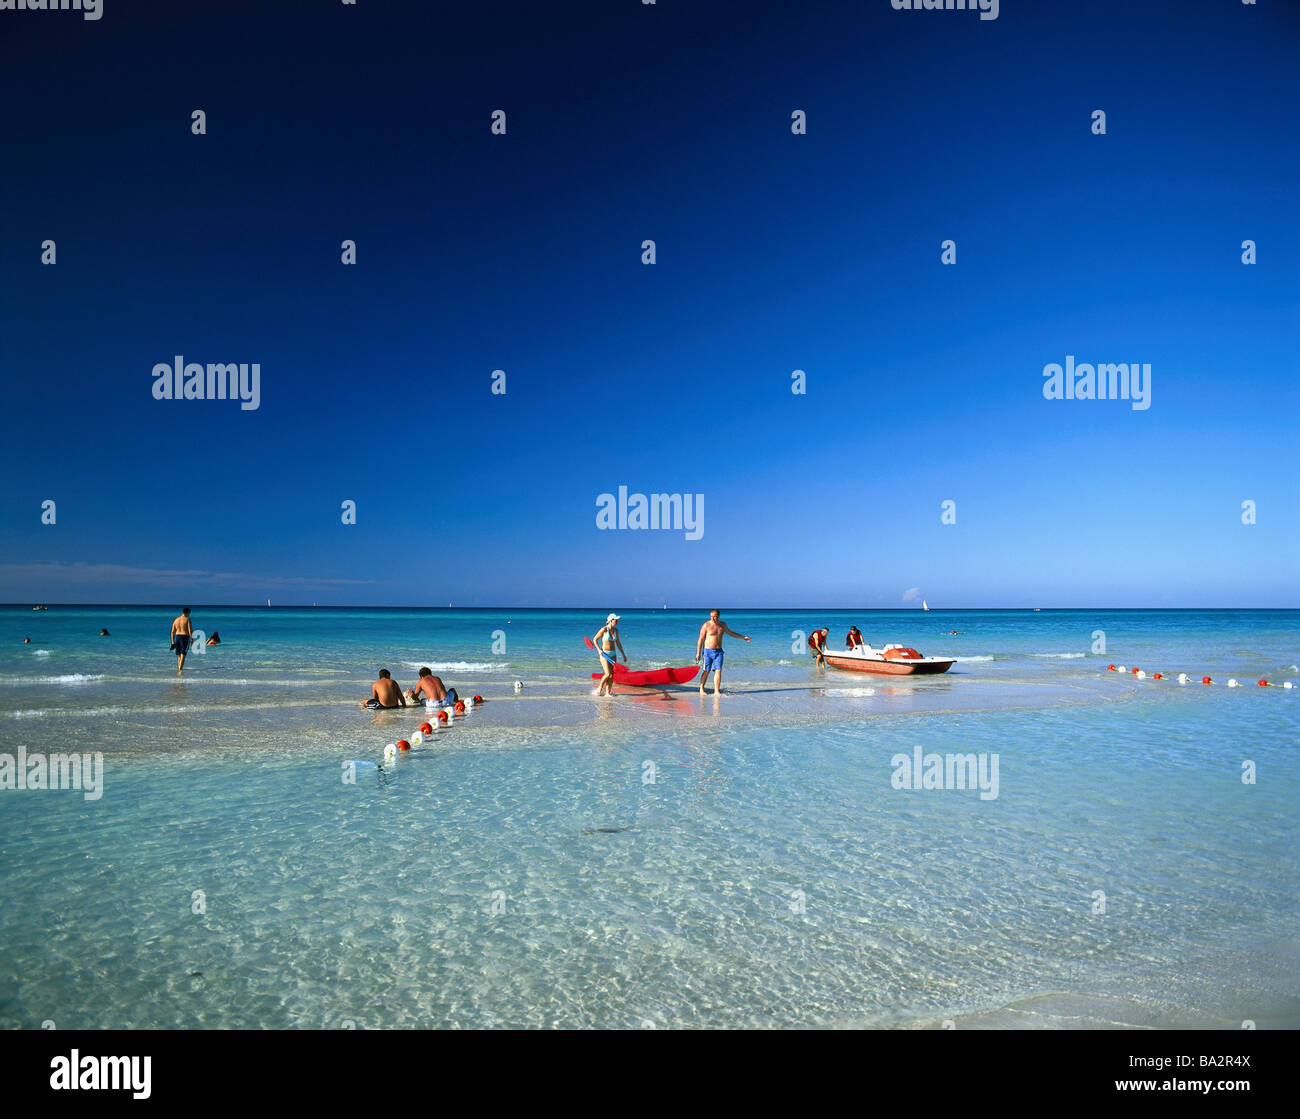 Caribbean water shallow swimmers no models release sea beach-proximity tourists water sits cooling bath-fun relaxen - Stock Image